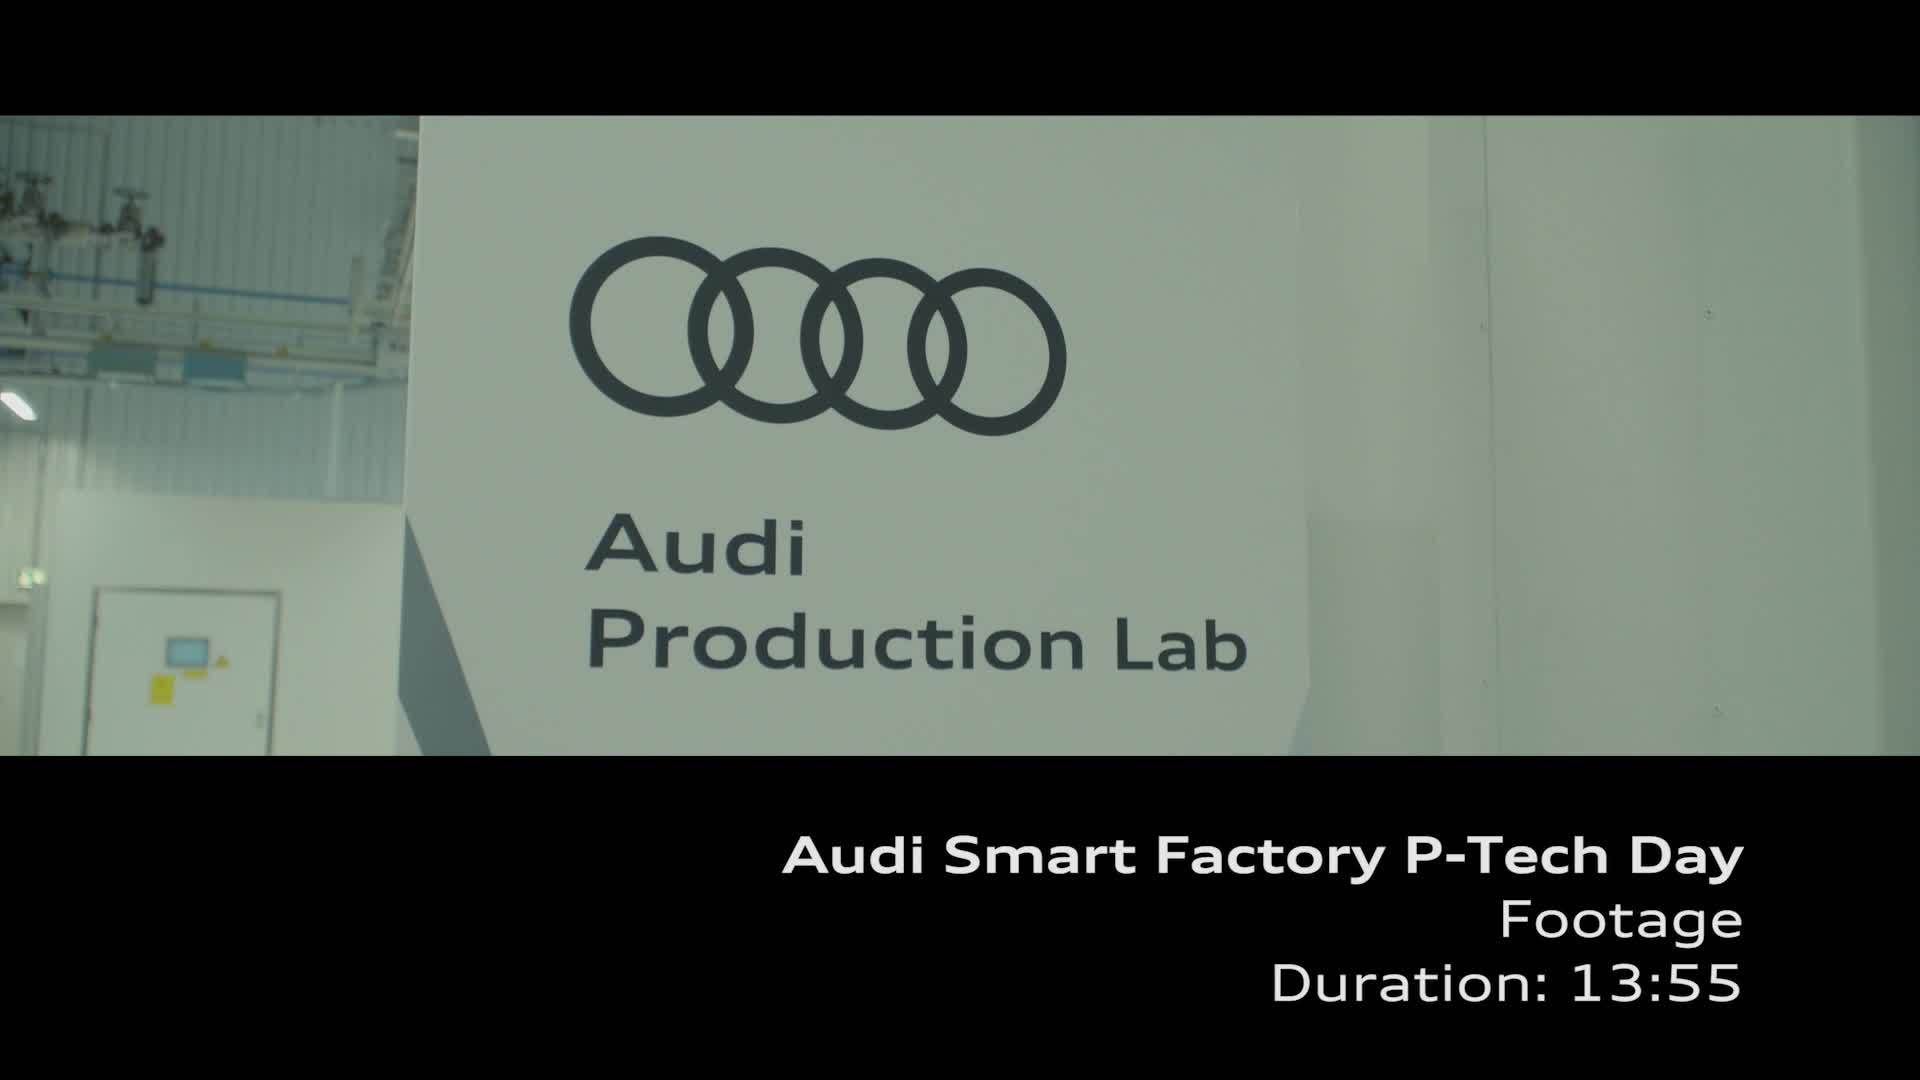 Audi Smart Factory P-Tech Day - Footage